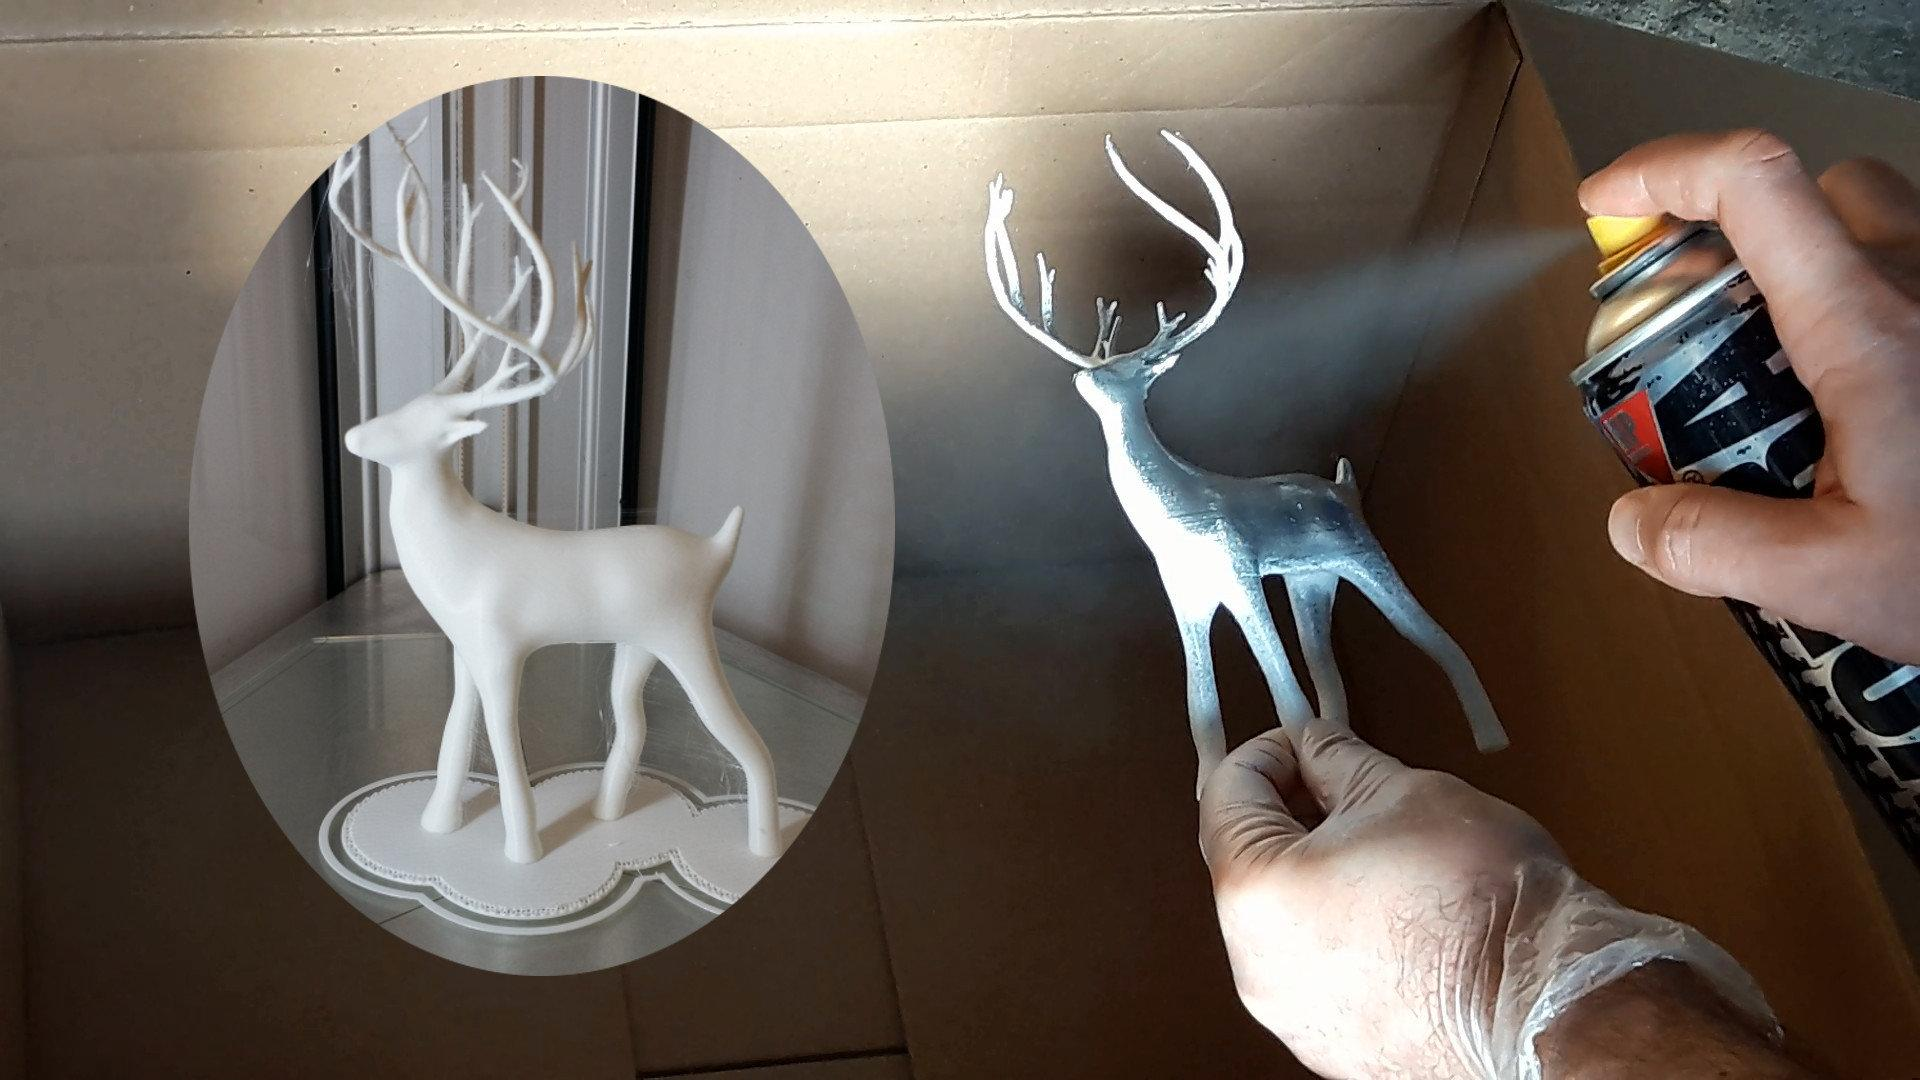 Spray painting 3d prints top 3 main things to consider for How to paint 3d